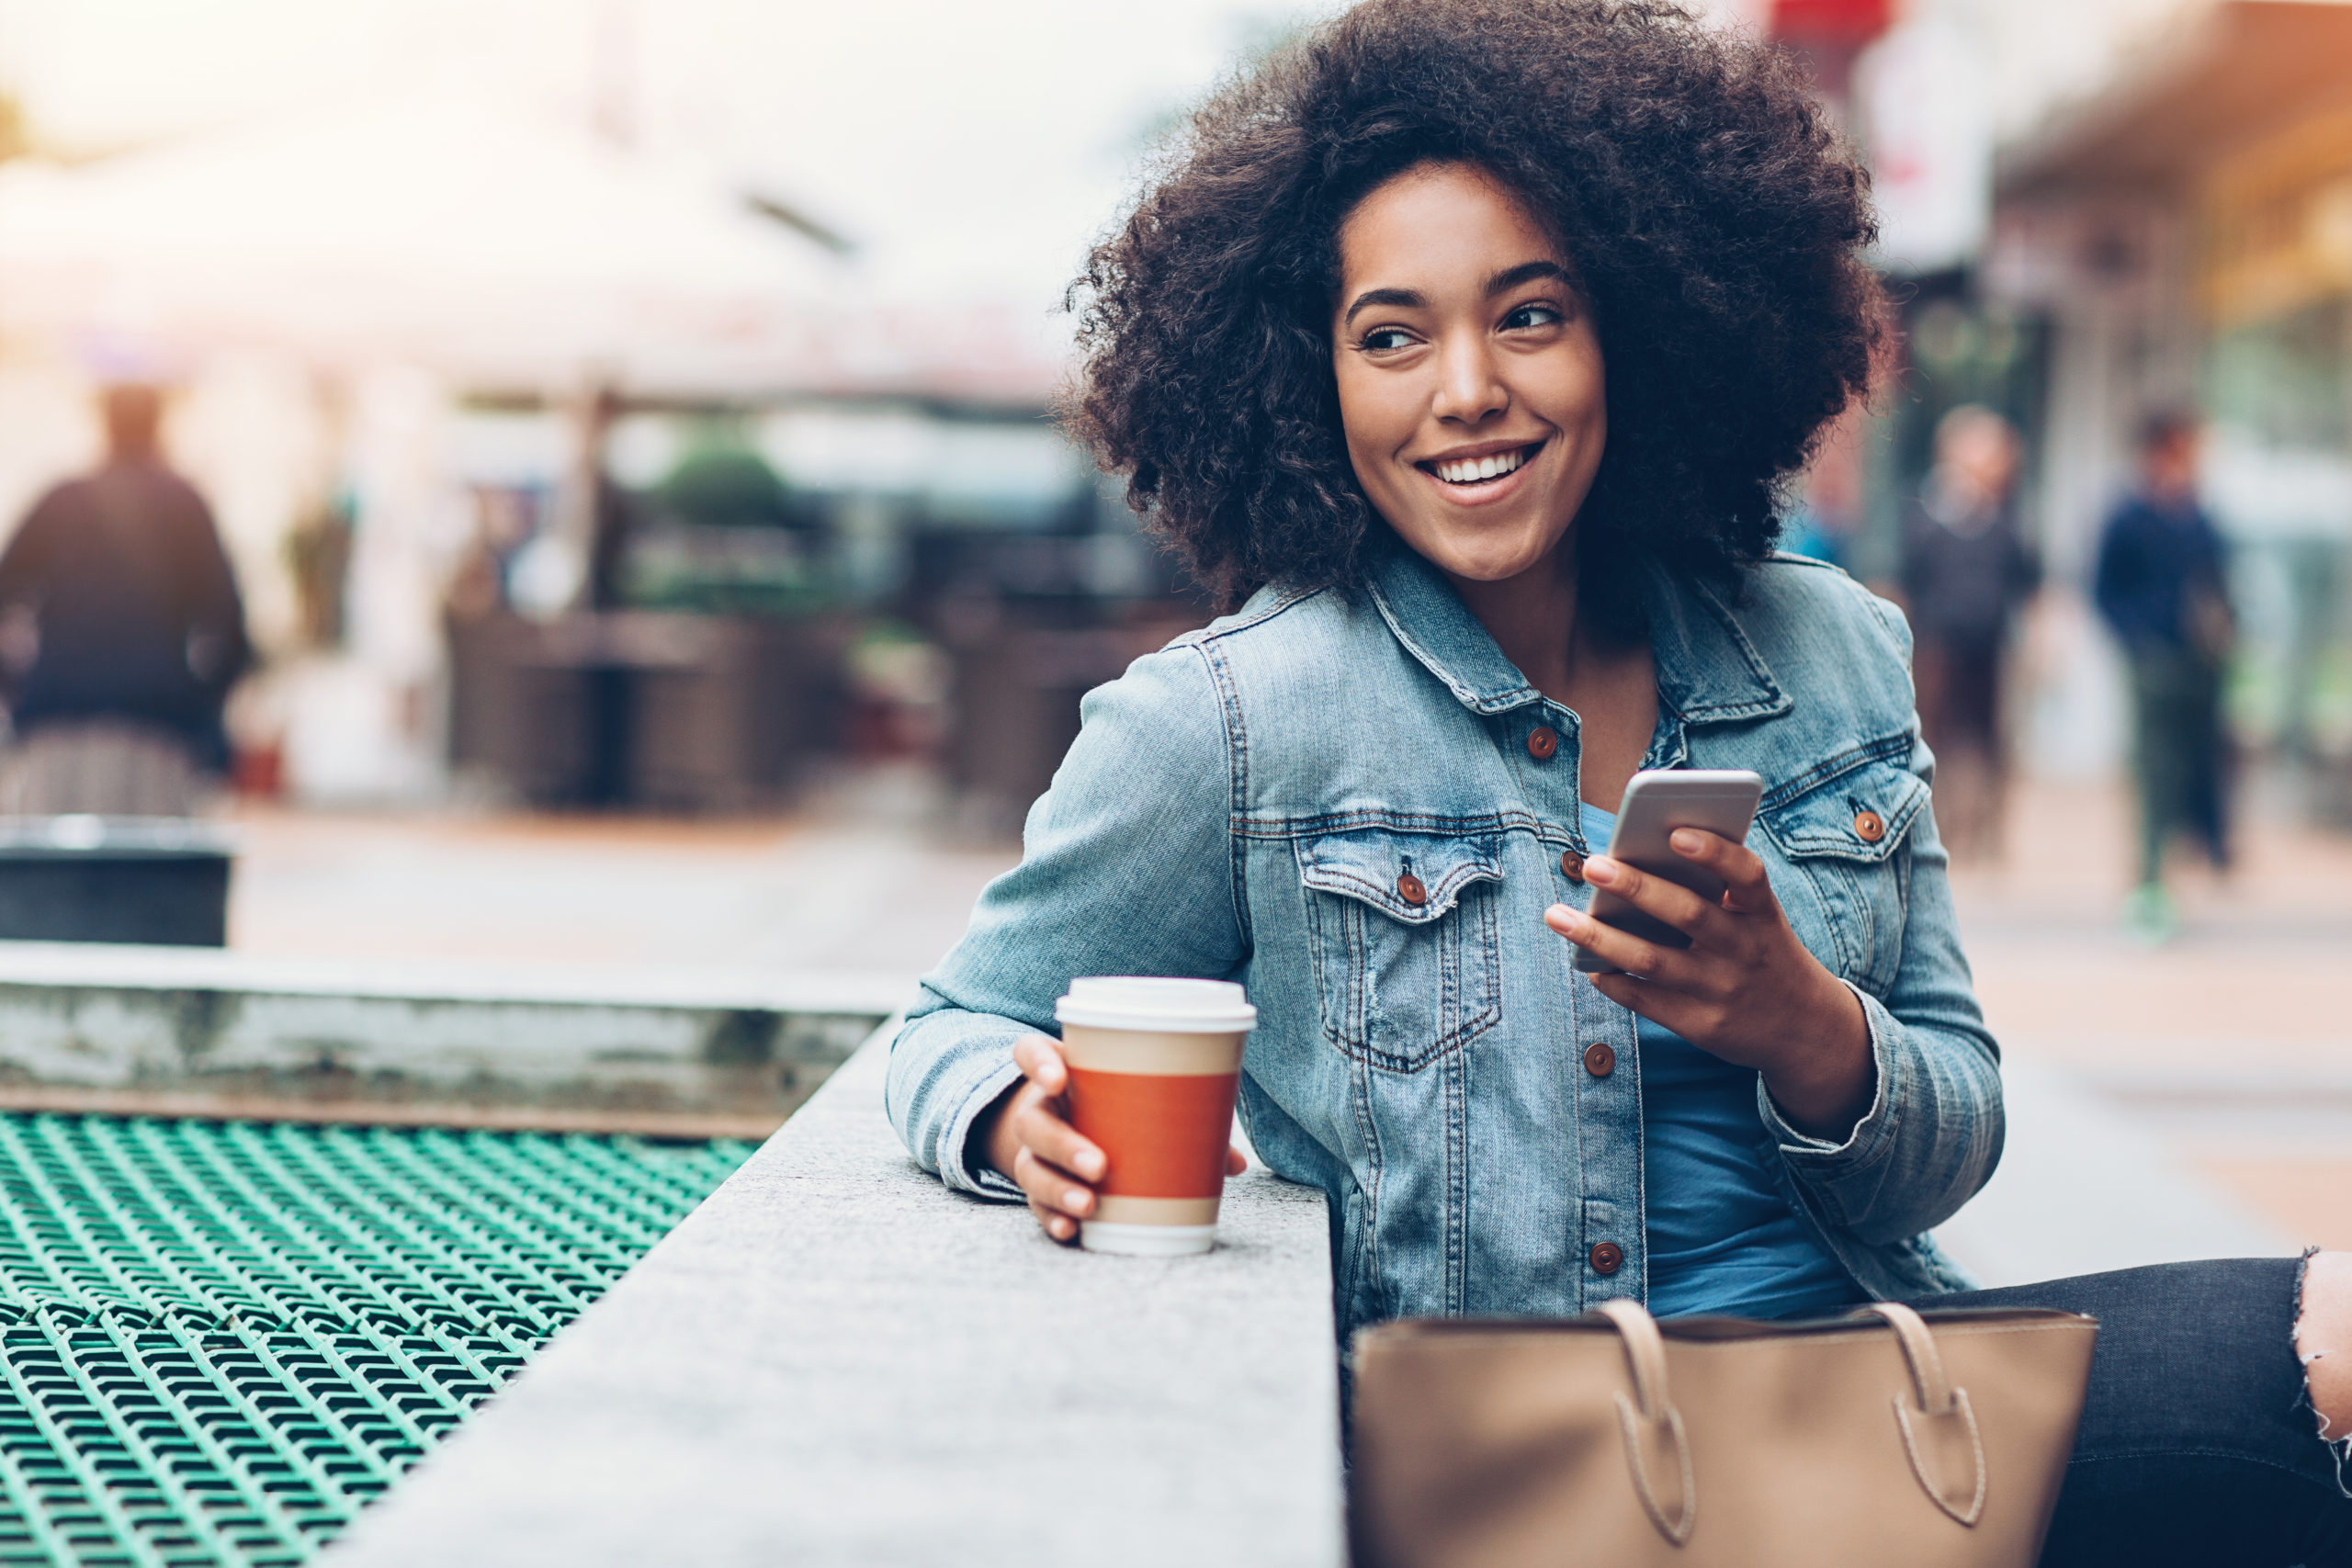 Happy Woman Using Smartphone Outdoors